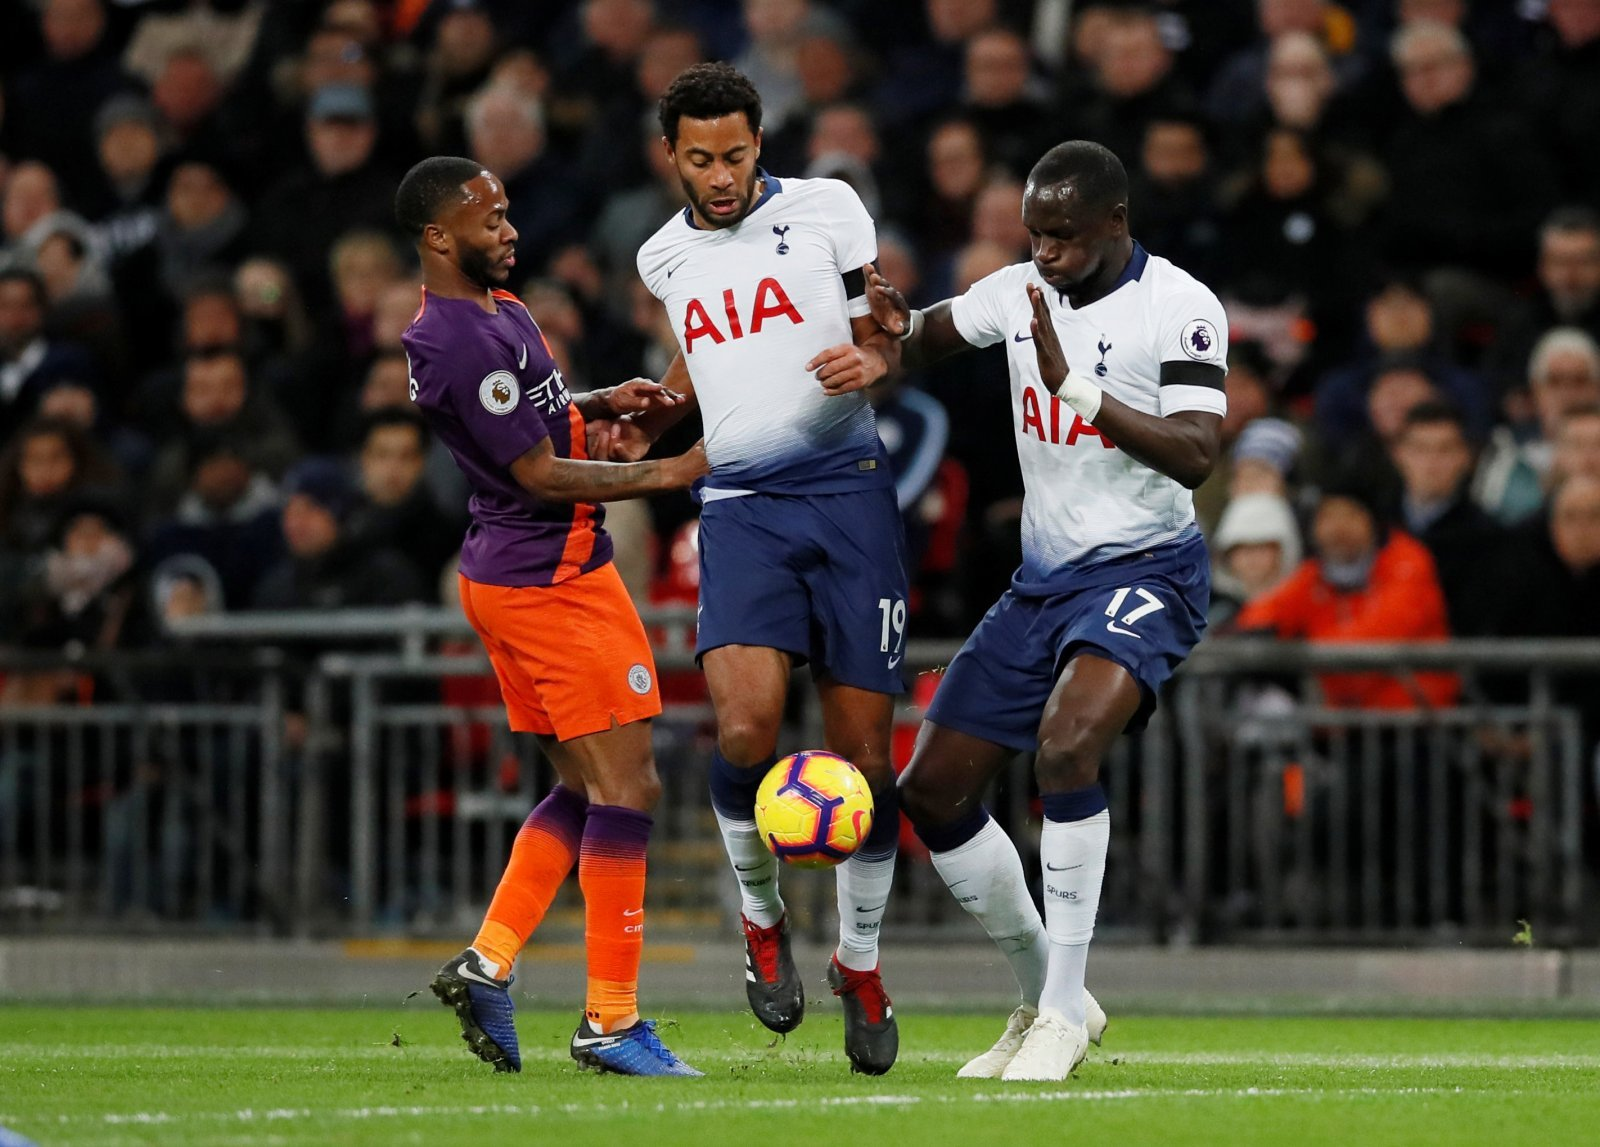 Tottenham Hotspur fans pleased to see solid performance by Moussa Sissoko